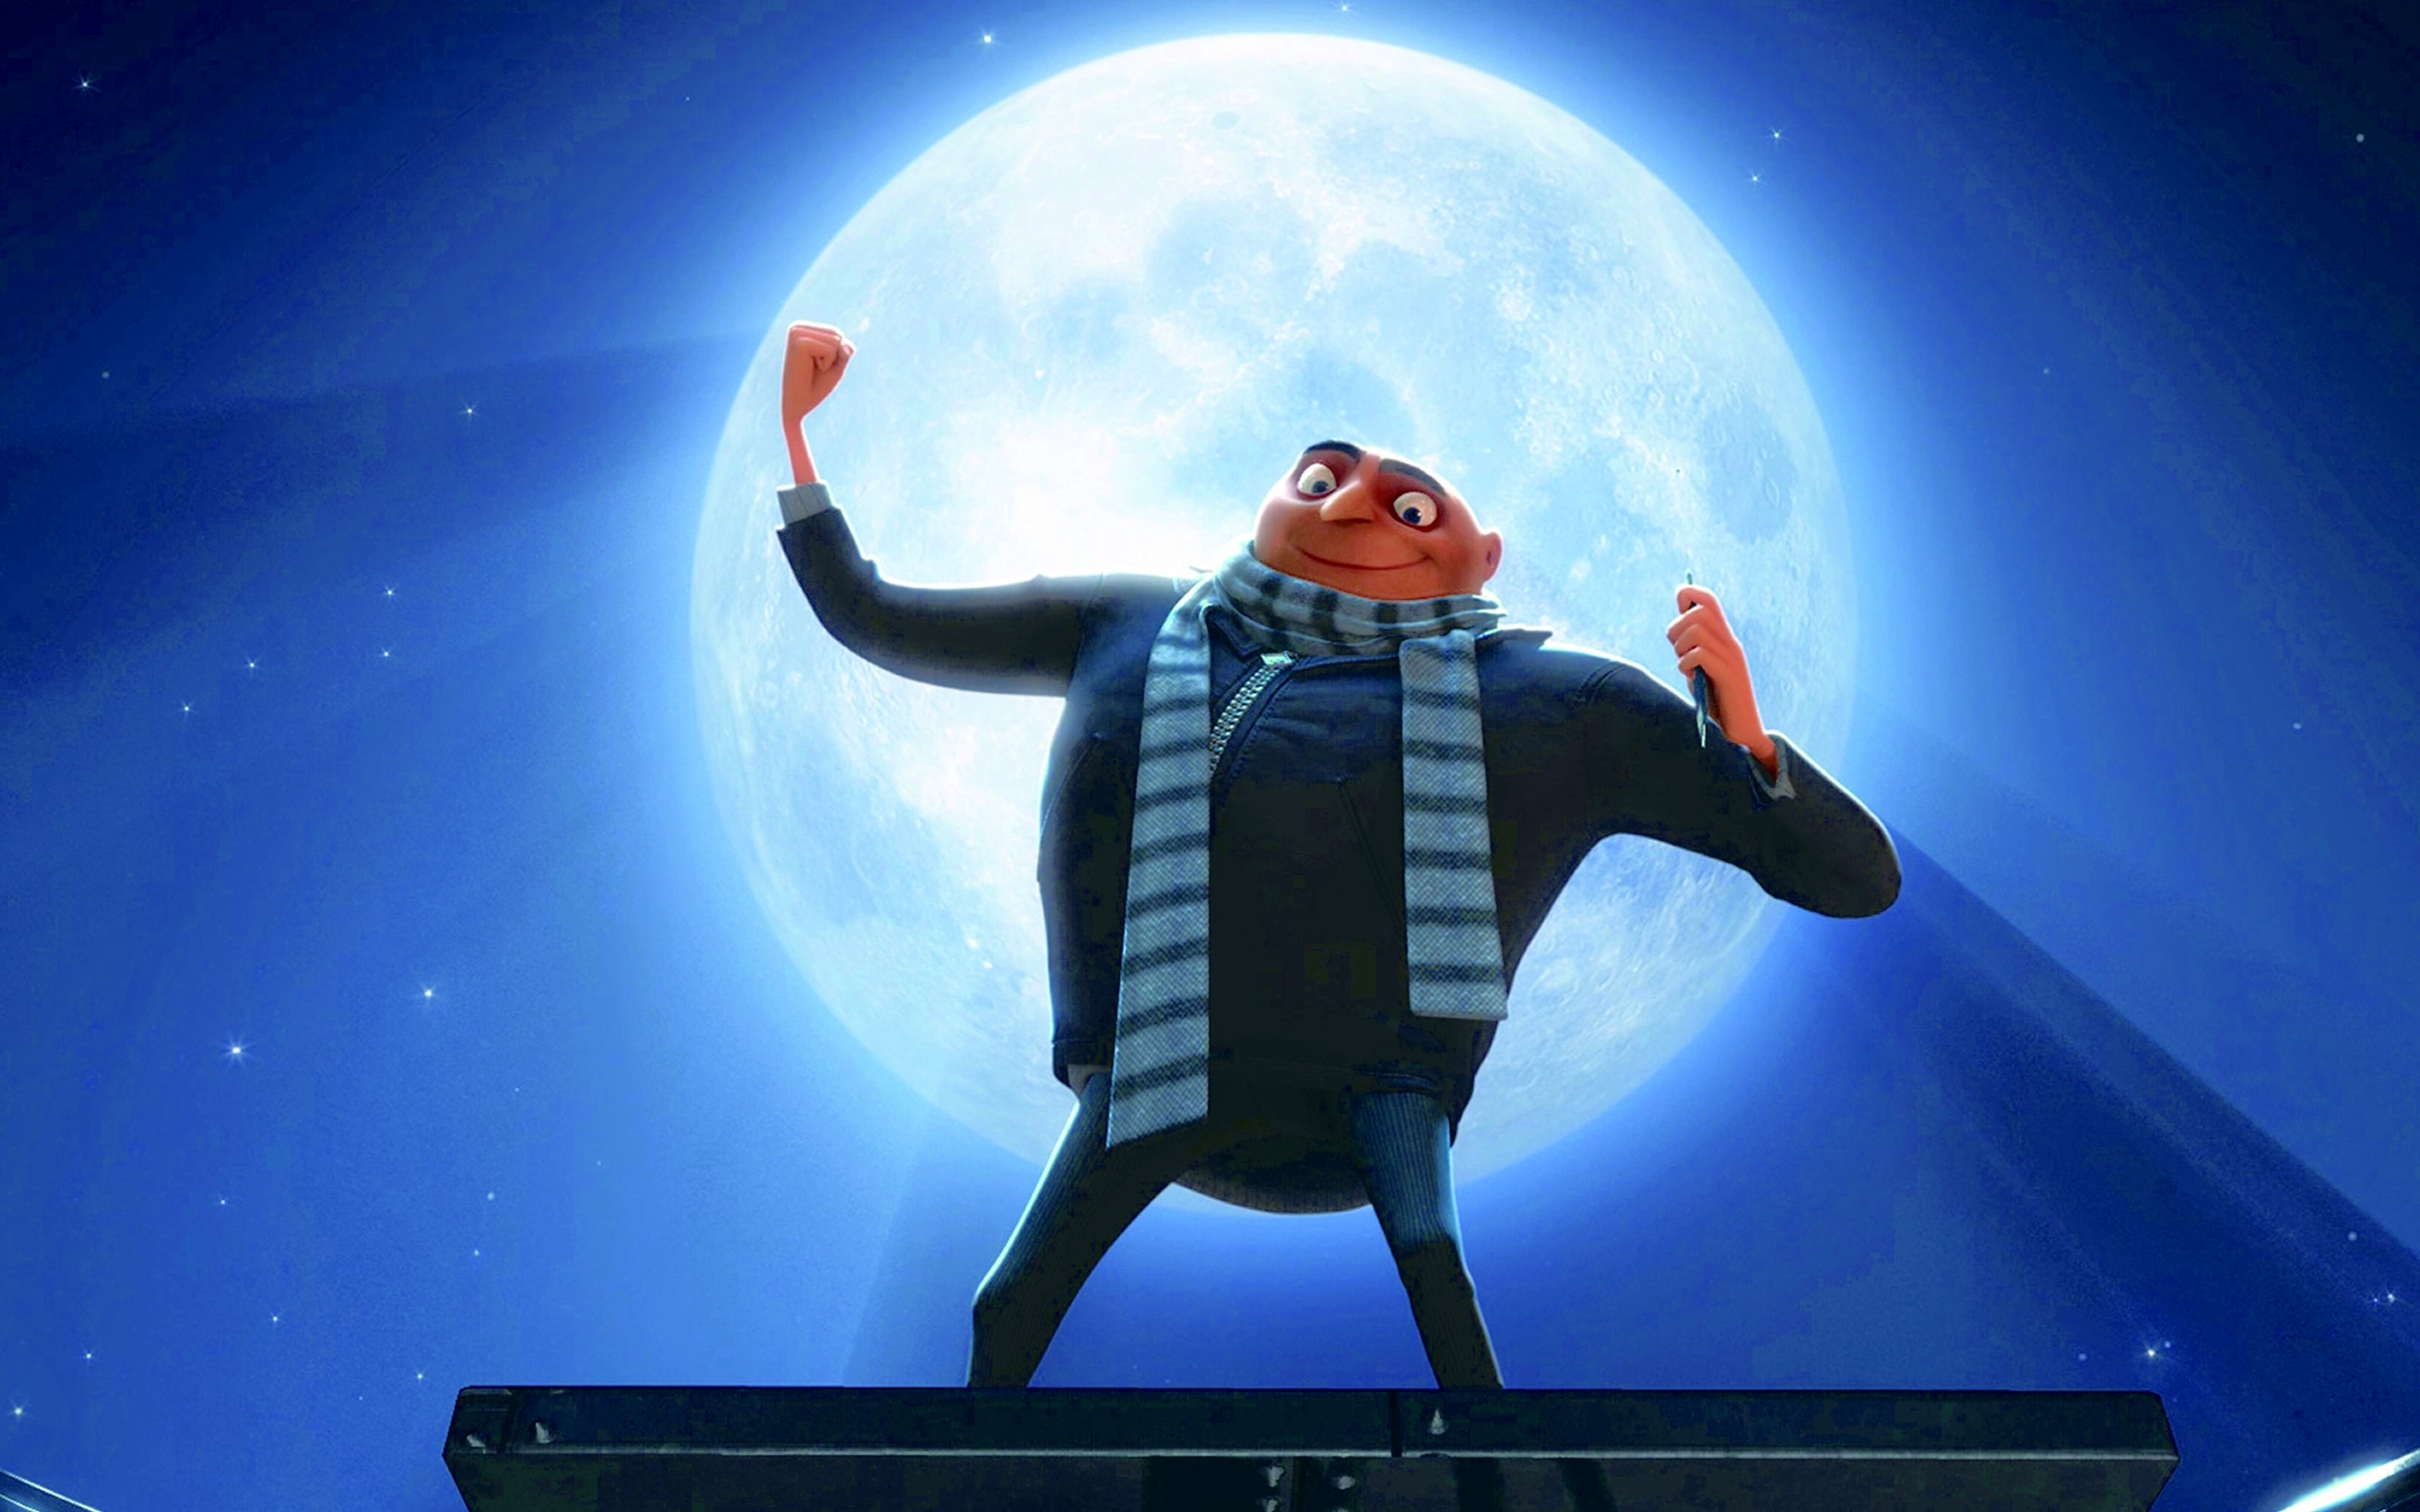 http://www.rabstol.net/uploads/gallery/main/79/rabstol_net_despicable_me_07.jpg